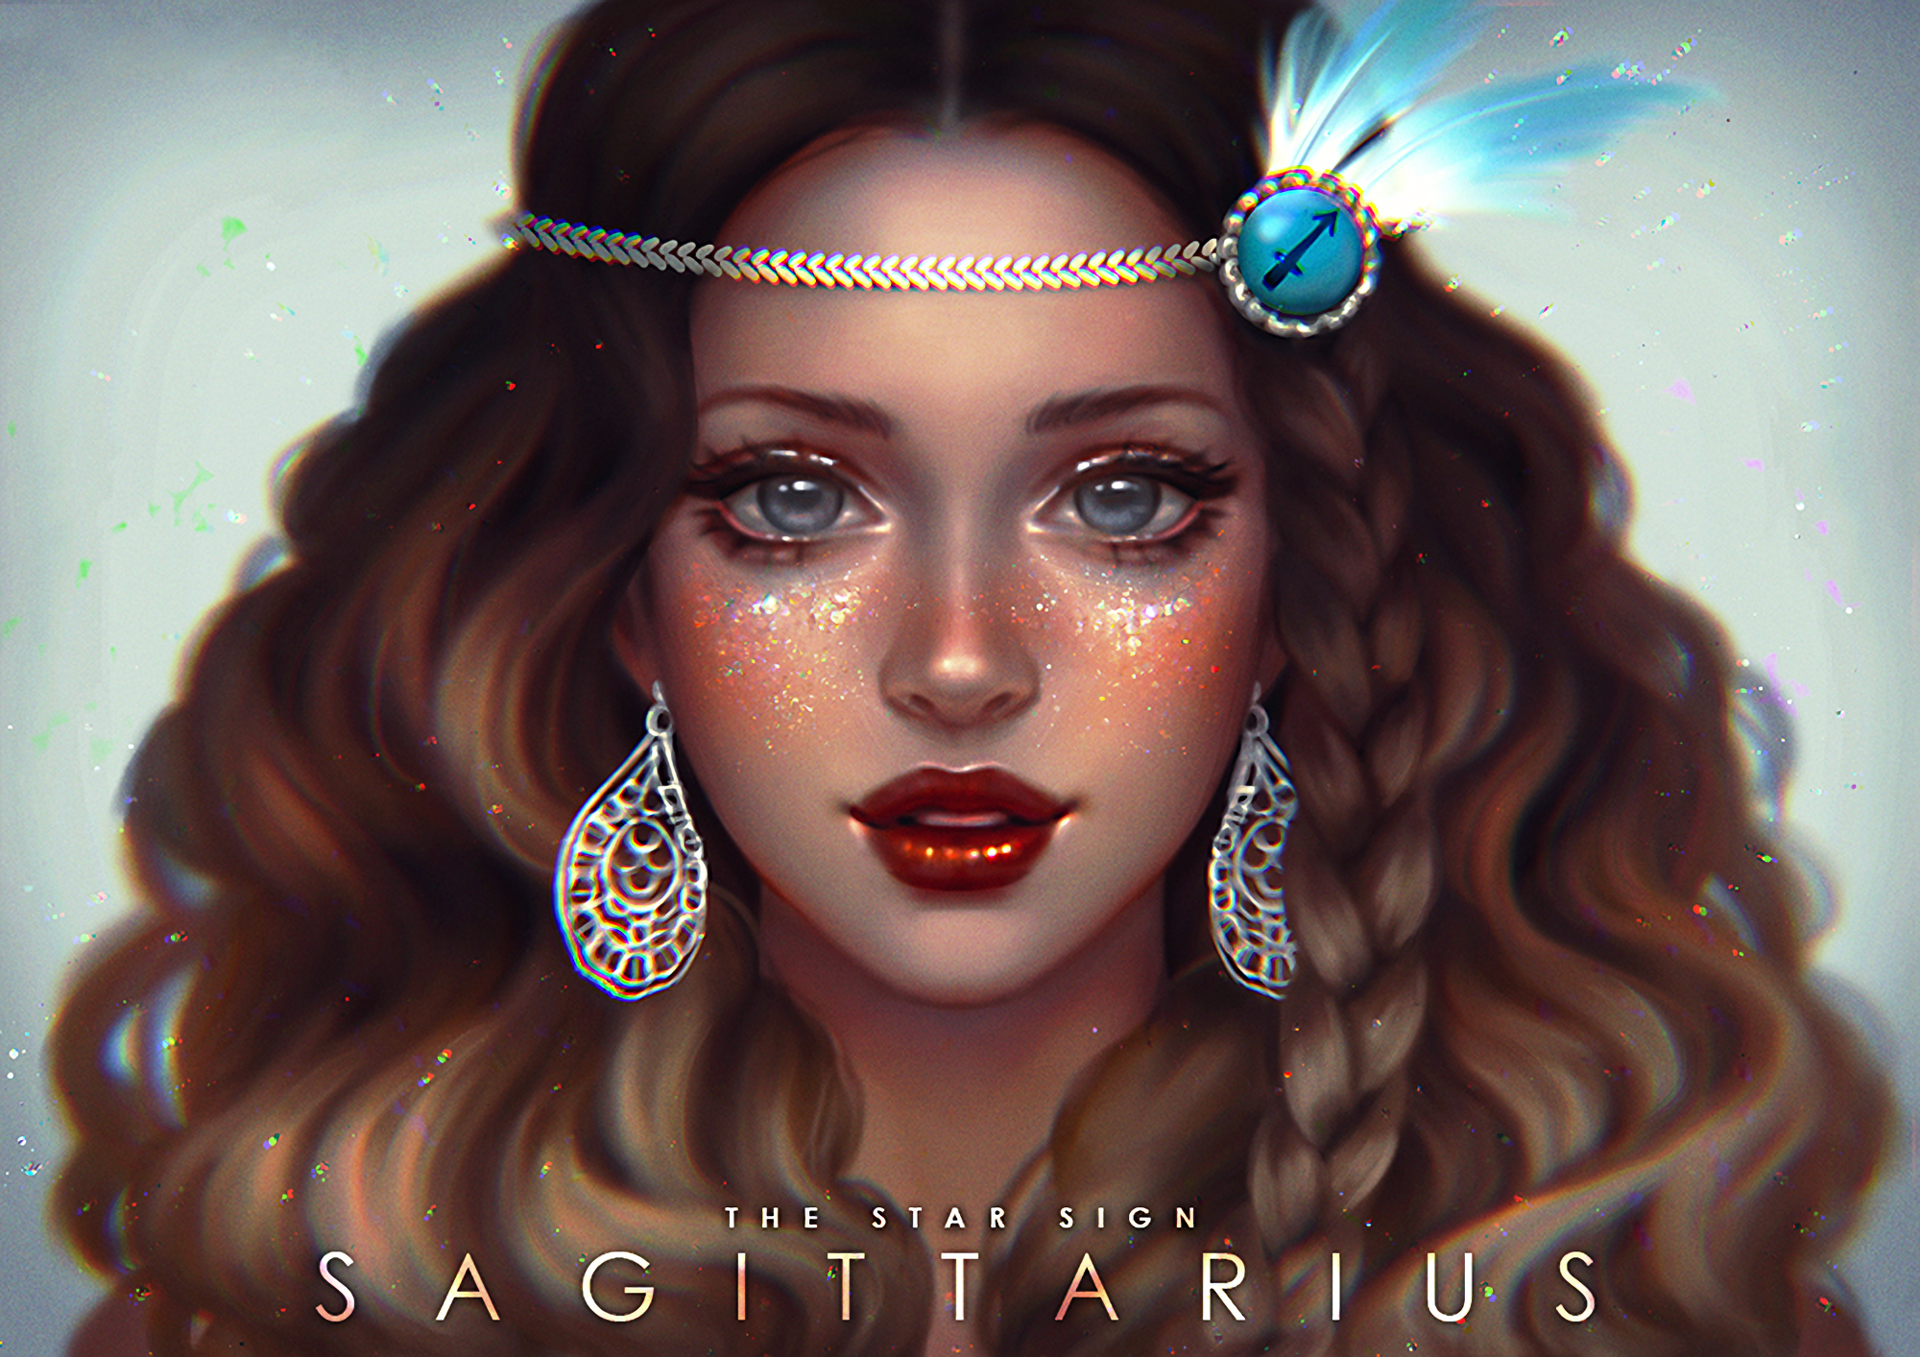 Sagittarius Fantasy Girl Hd Wallpaper Background Image 1920x1357